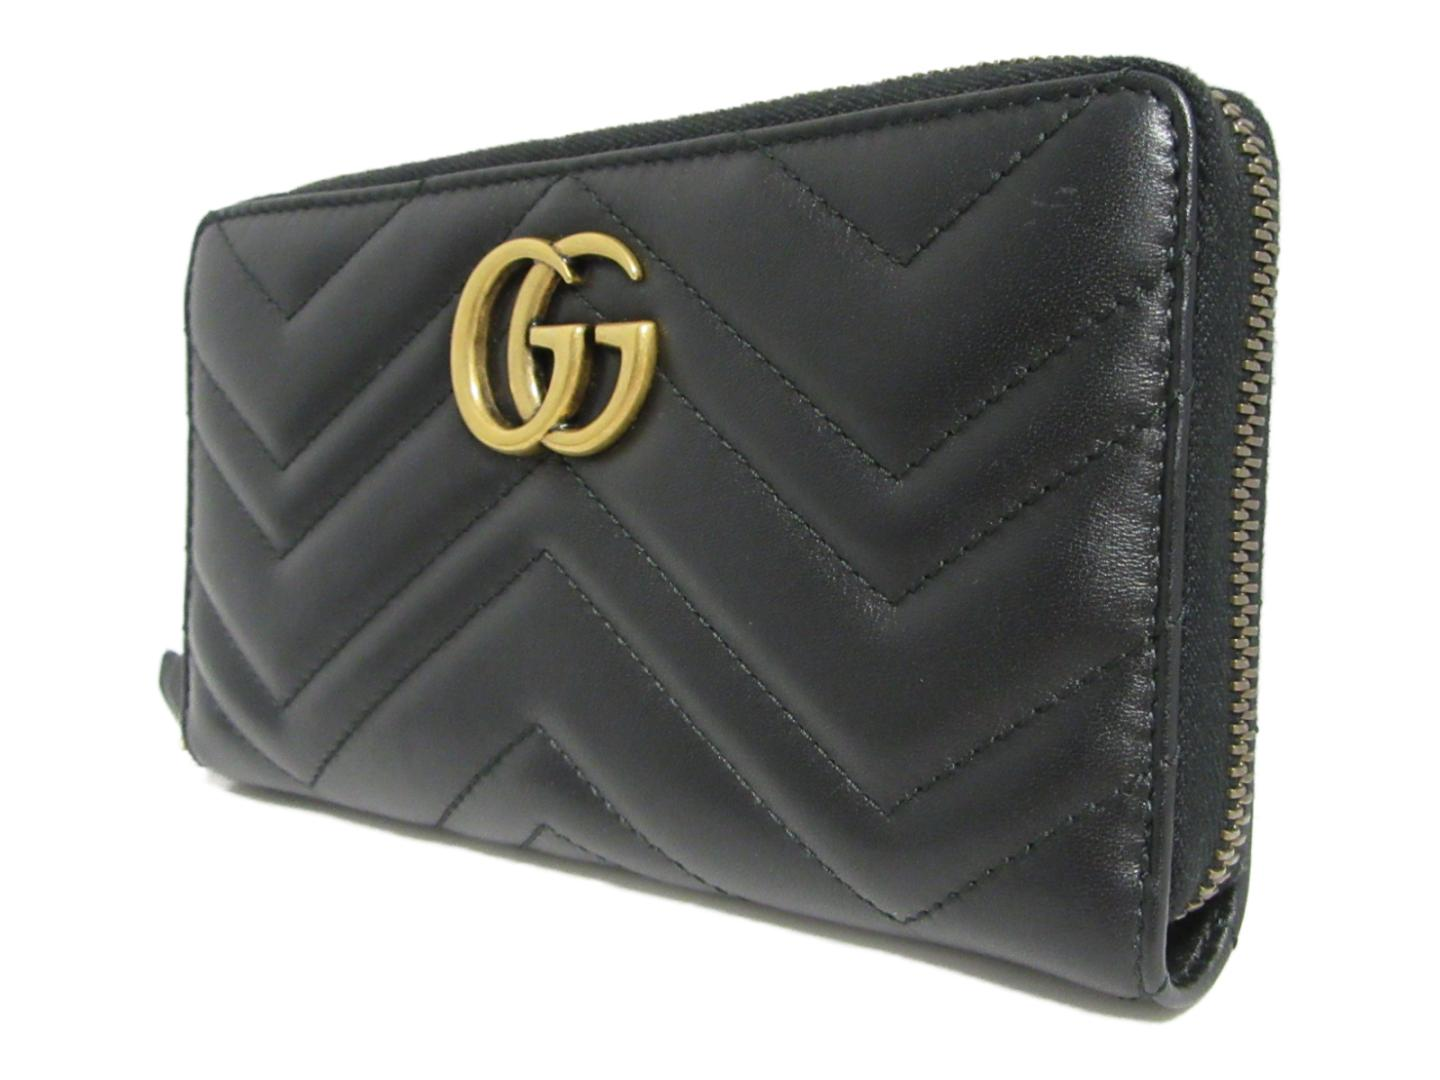 16f1a7e059a Auth GUCCI GG Mermonte round long wallet Purse 443123 leather Black